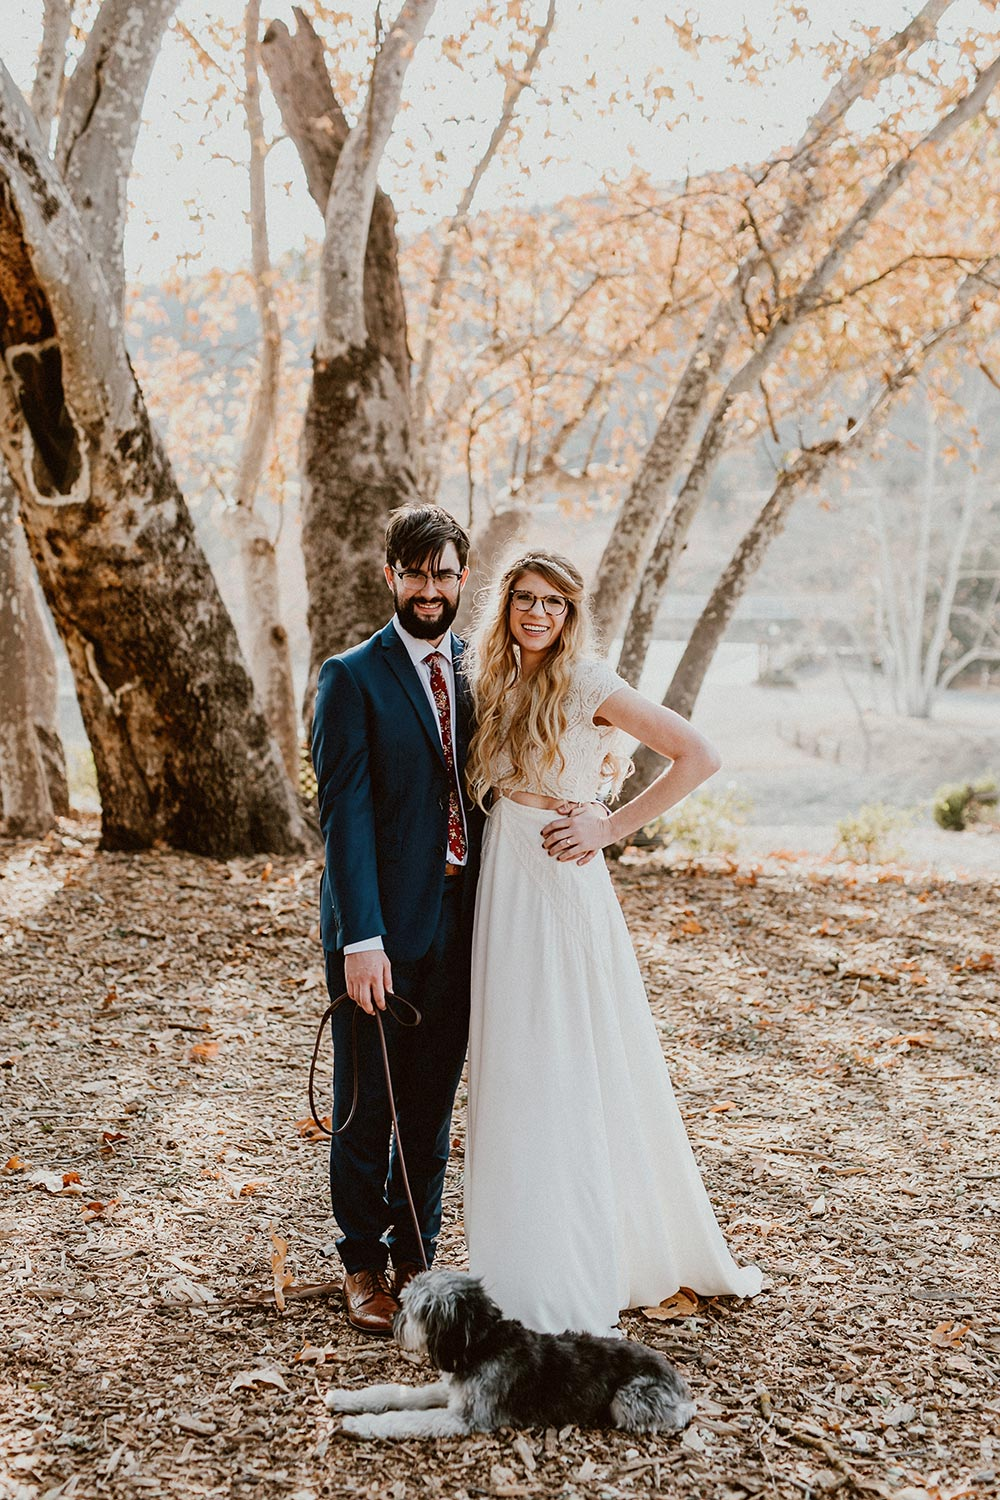 boho wedding dress bride and groom portraits